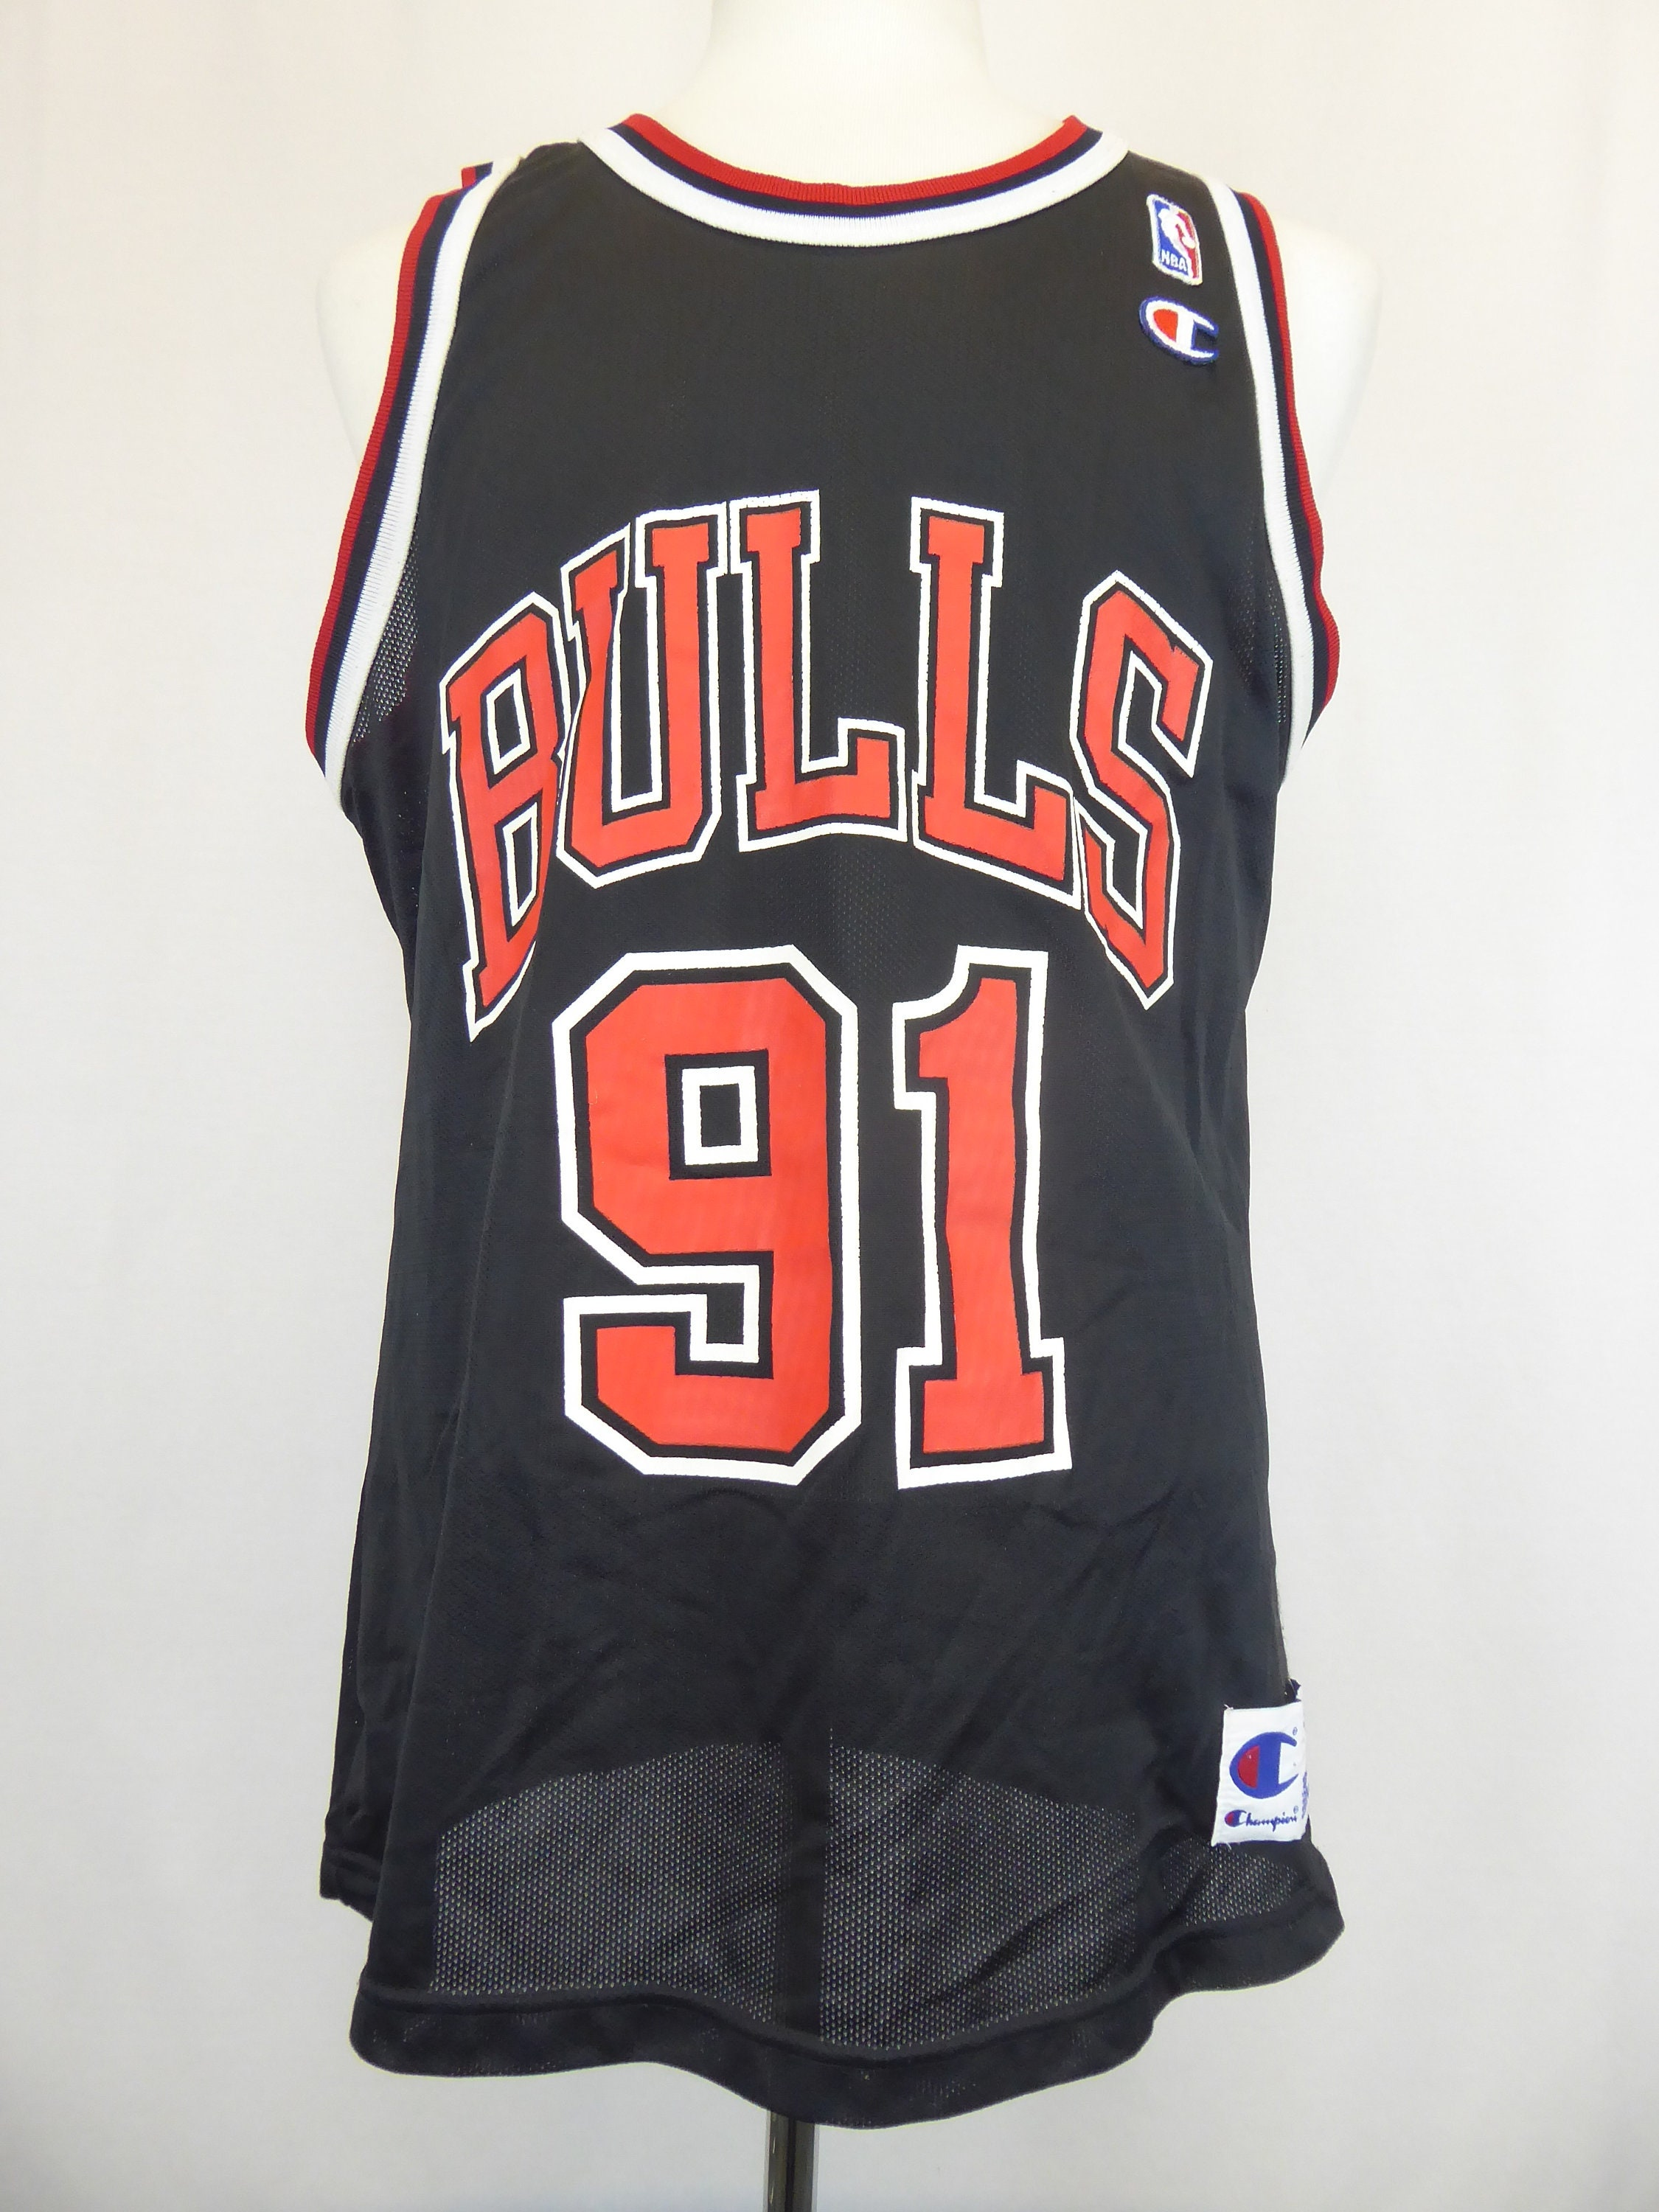 the best attitude ba013 68930 90s Bulls Jersey, Dennis Rodman, Chicago Bulls, Number 91 ...